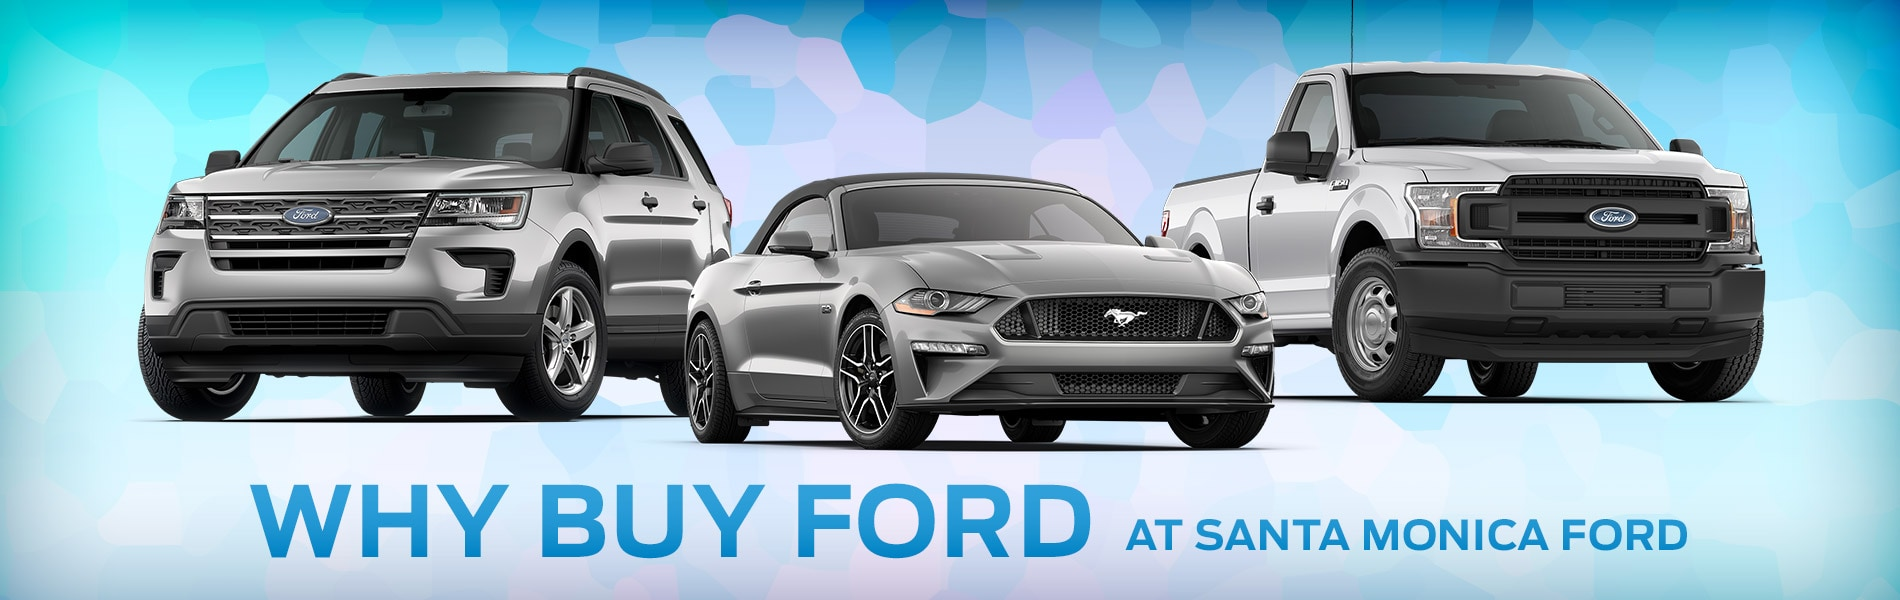 Why Buy Ford